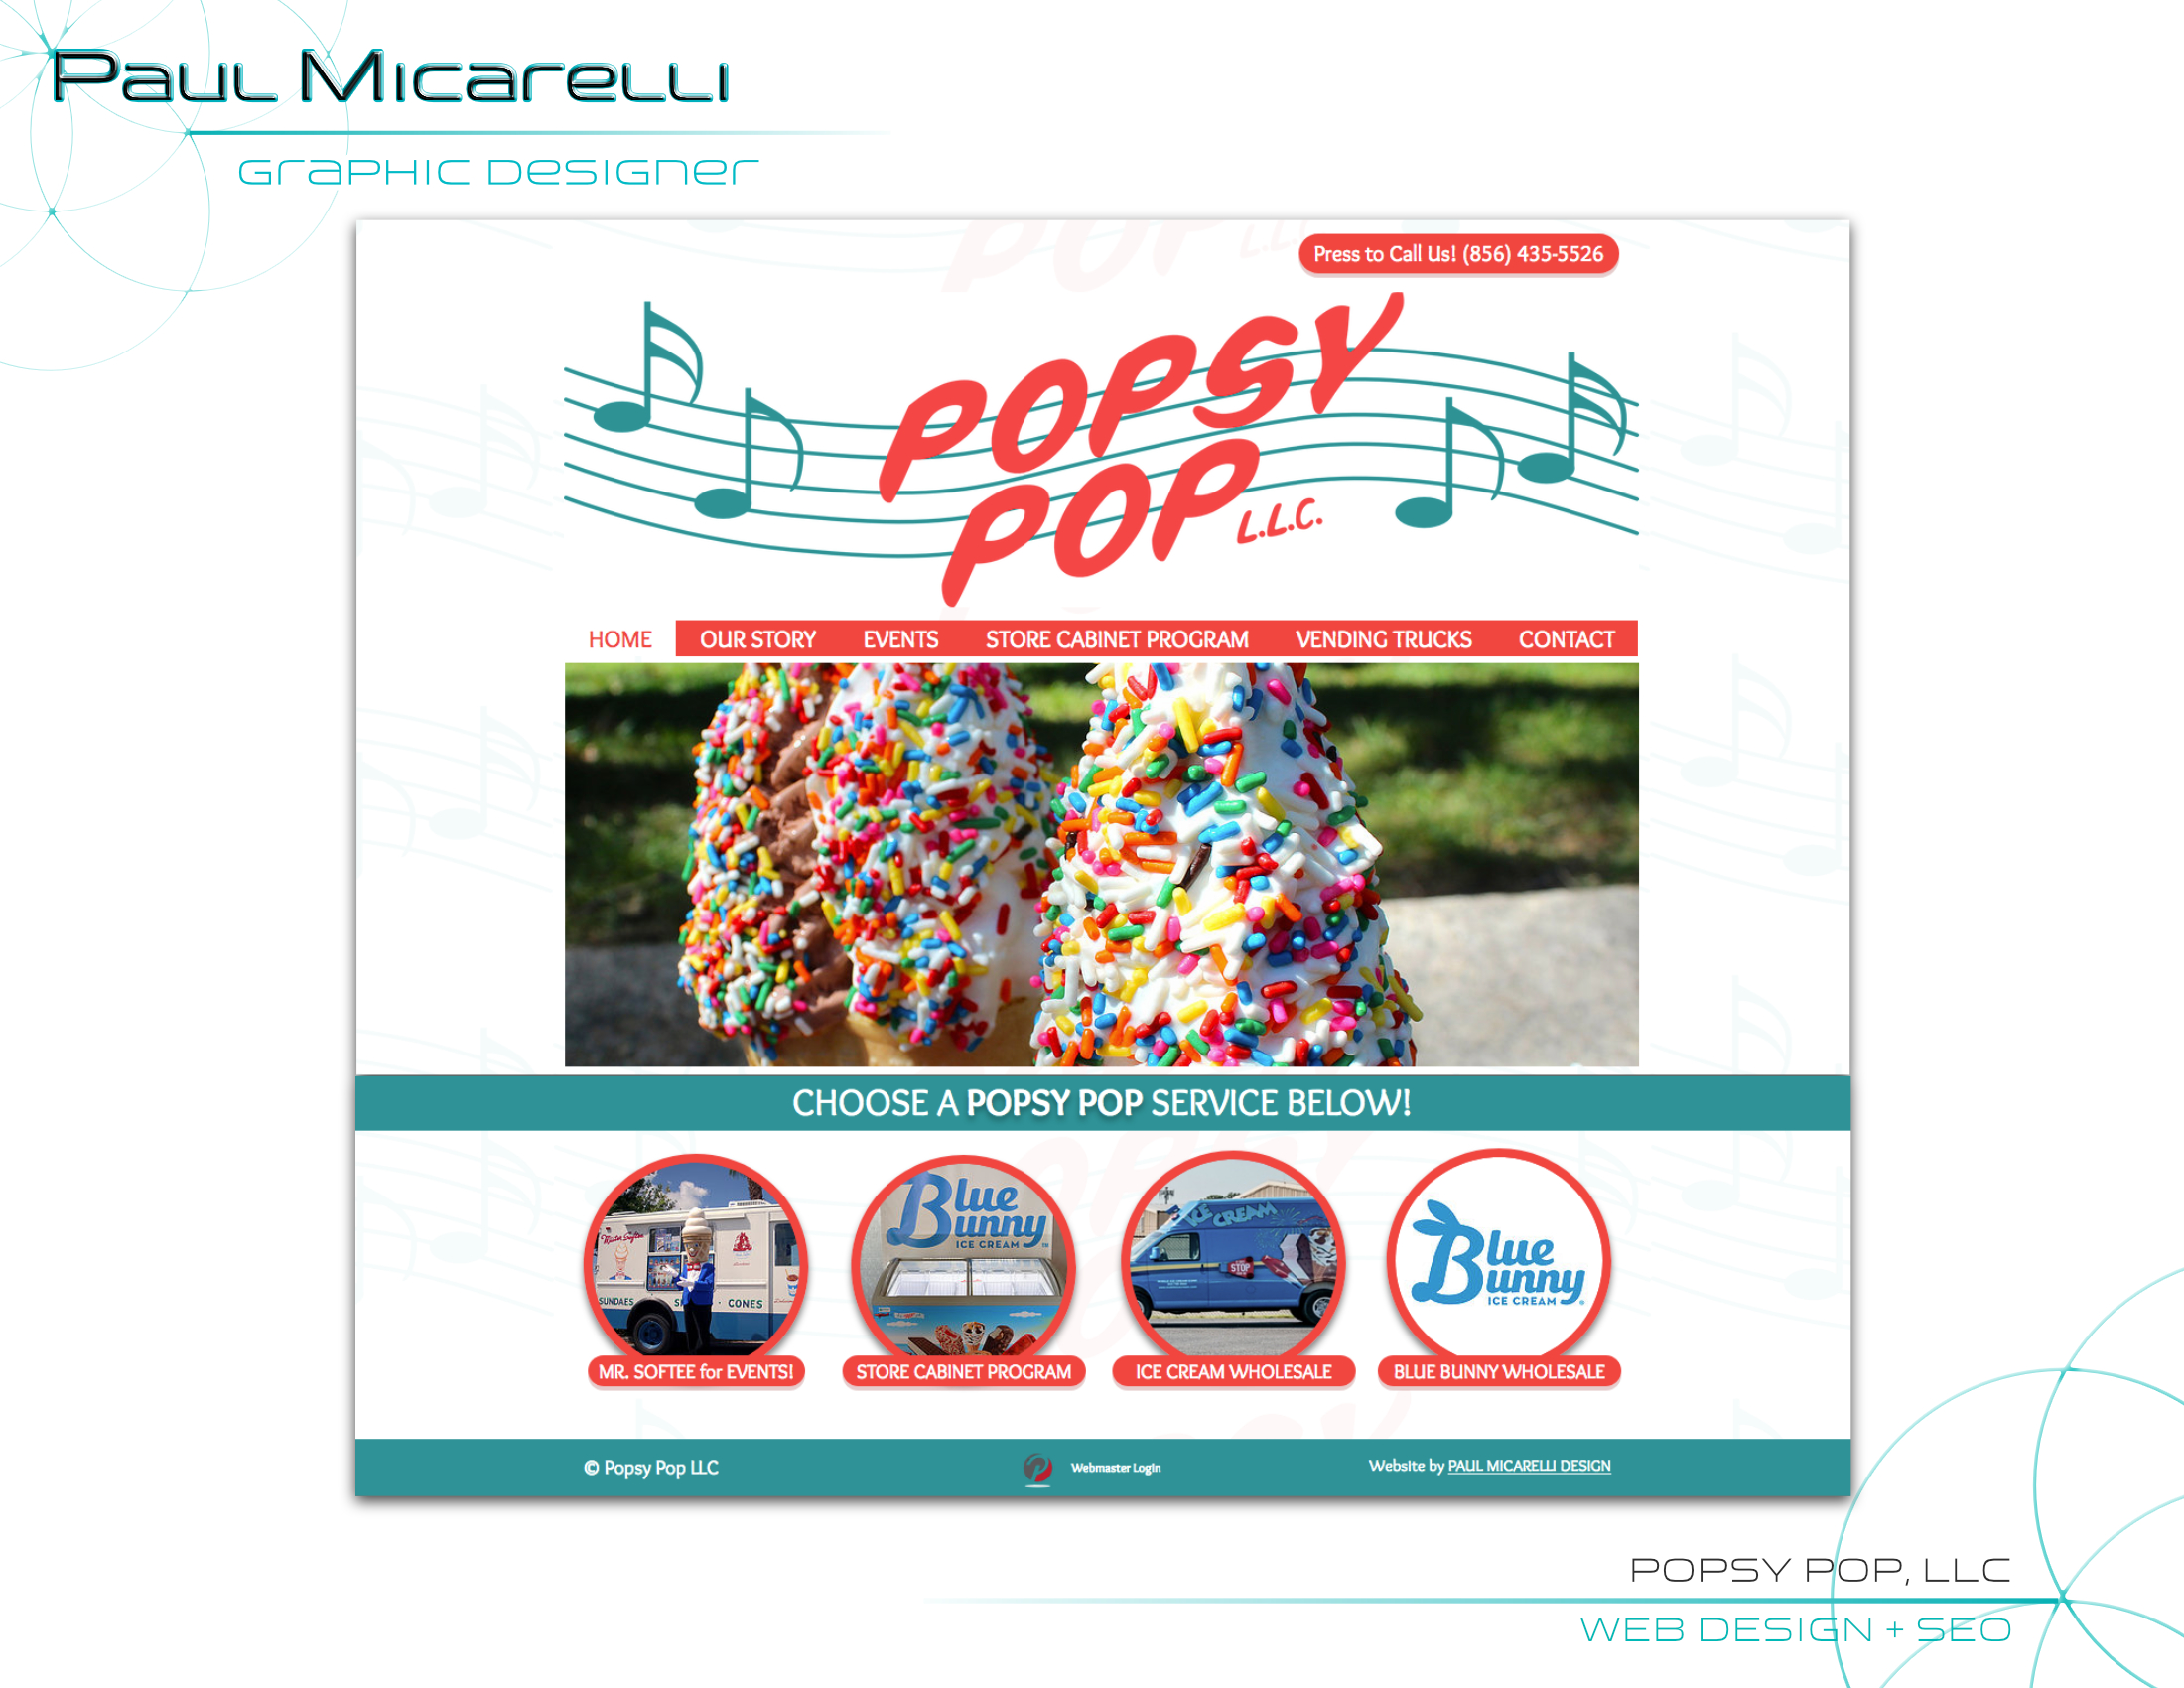 Paul-Micarelli-Popsy Pop Website